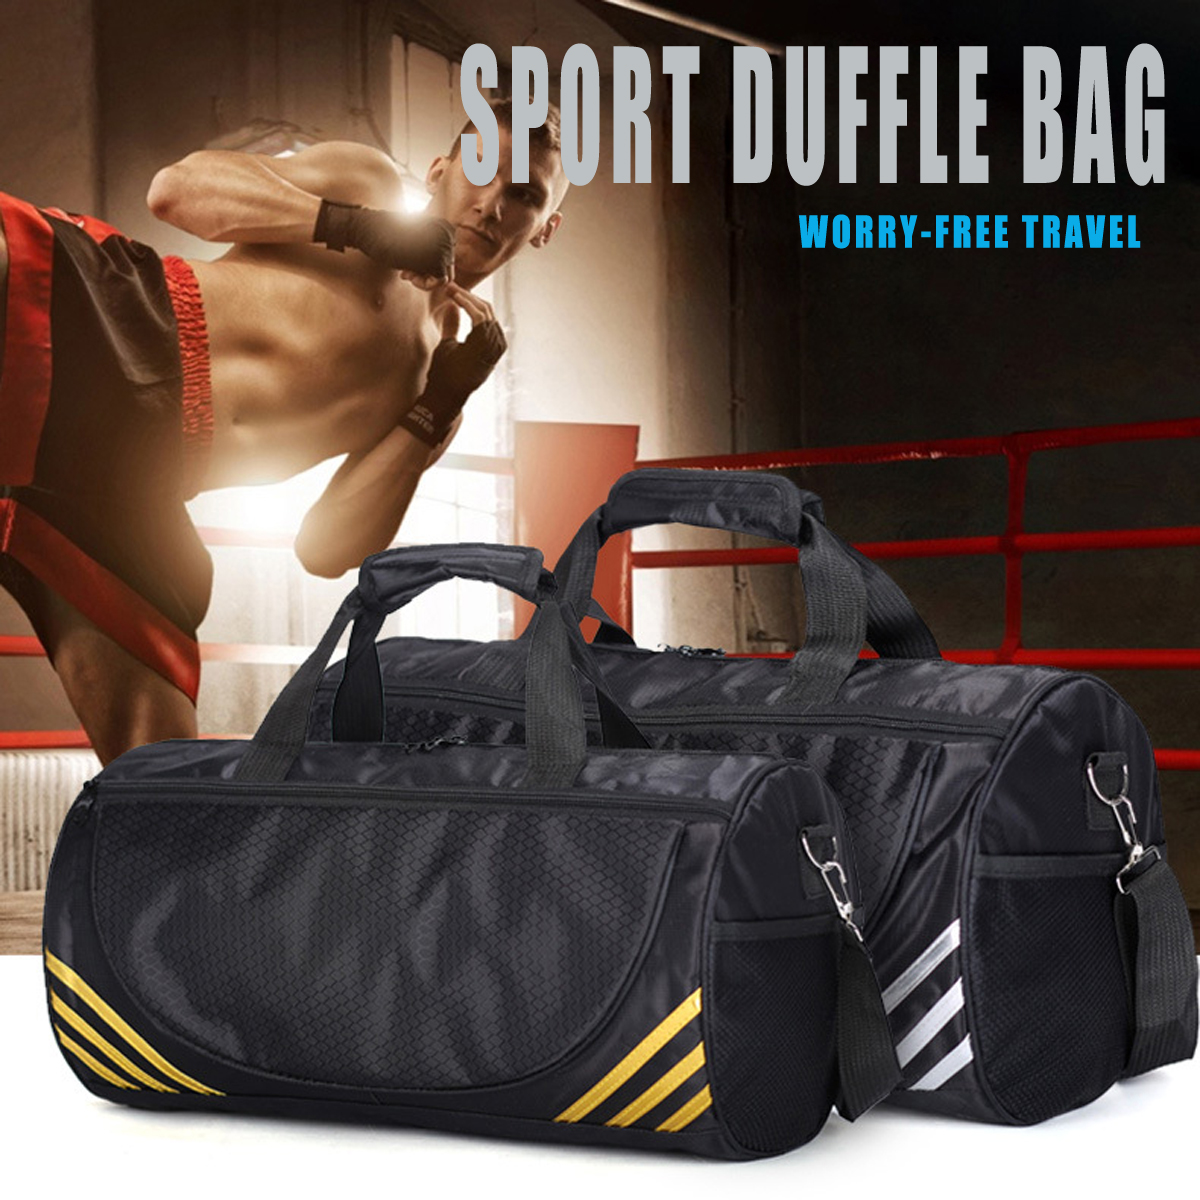 20L Sport Duffle Bag Pack Gym Travel Handbag Trainning Exercise Yoga Shoulder Strap Pouch